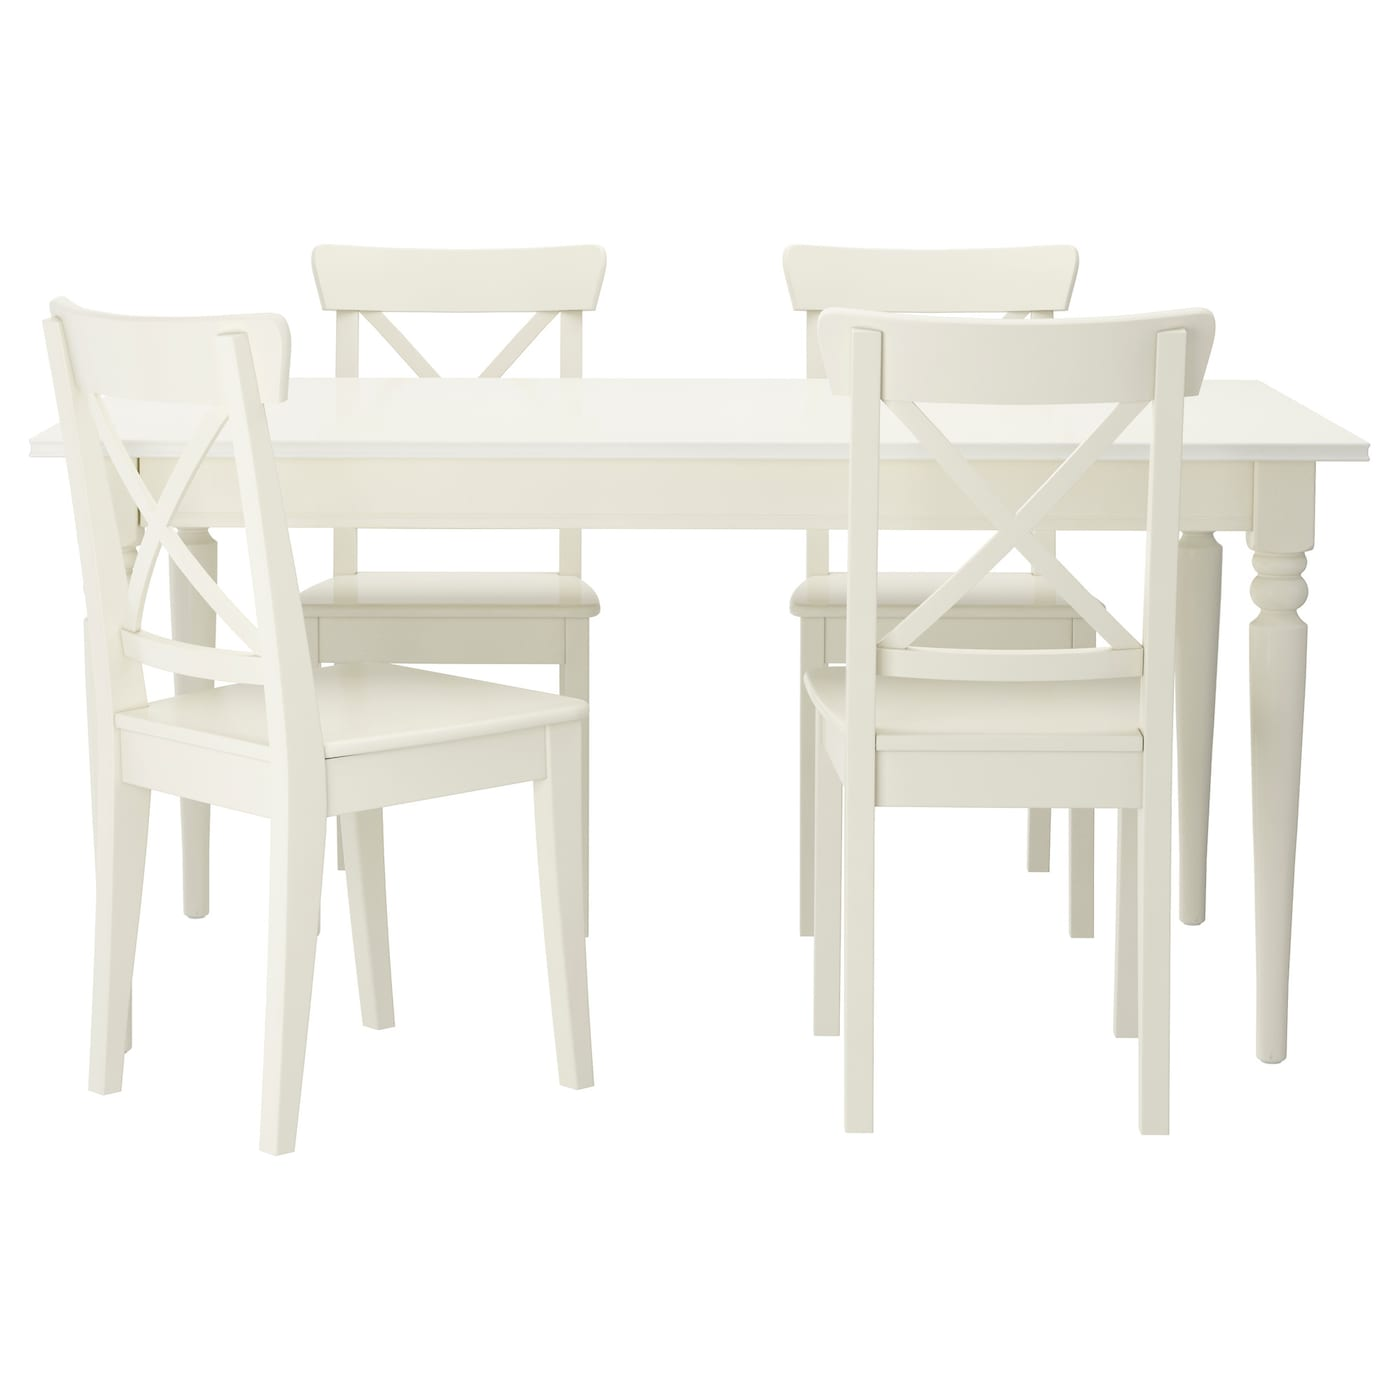 Ikea Gb En Images Products Ingatorp Ingolf